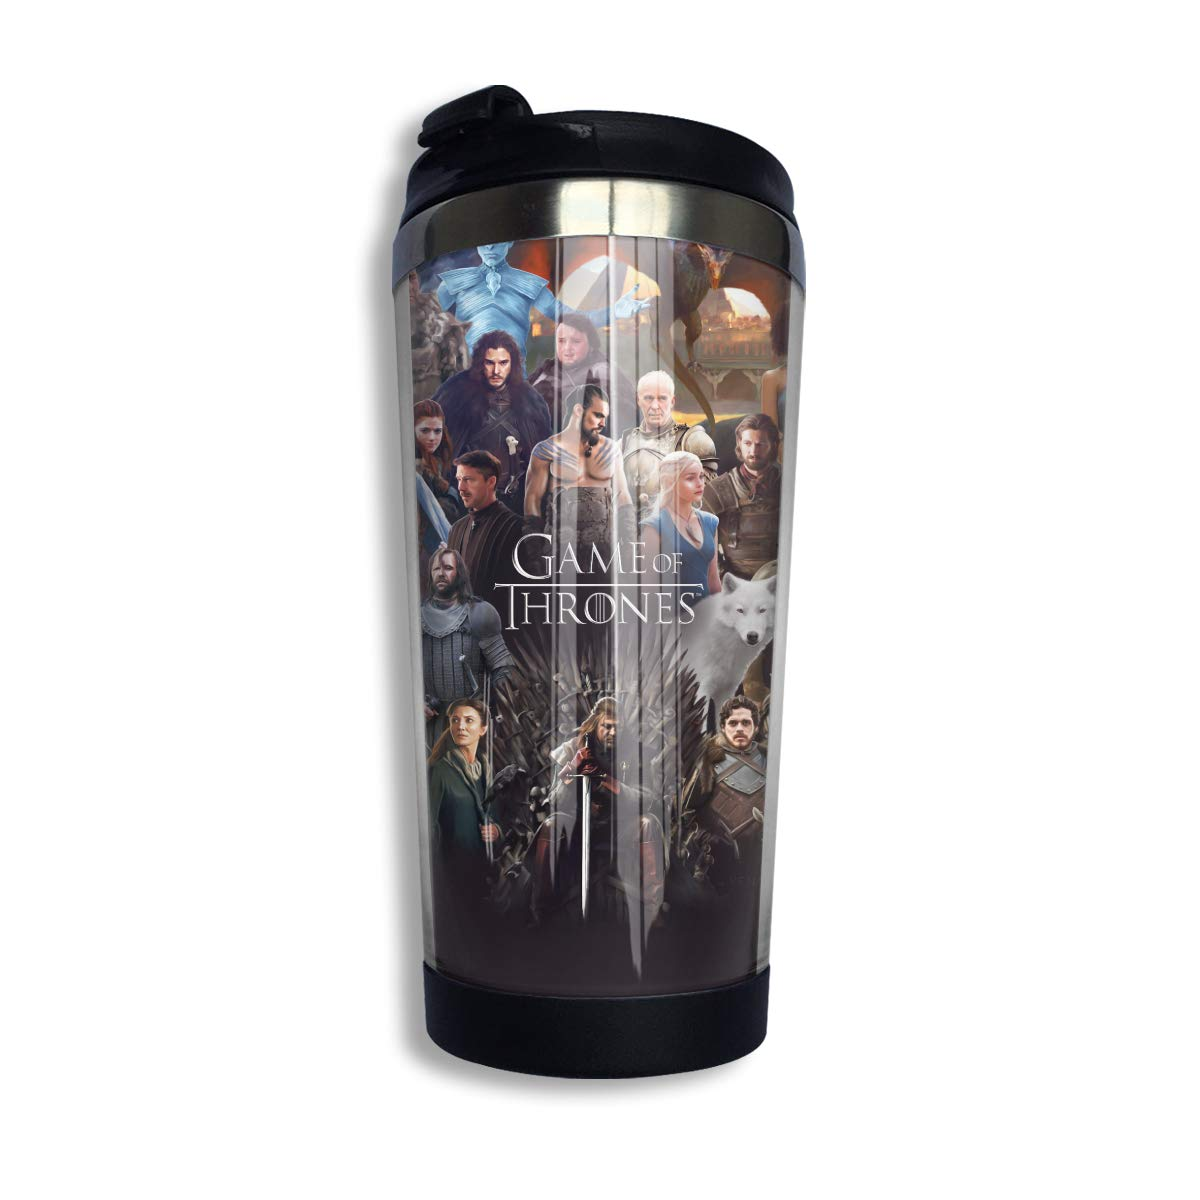 Game-of-thrones Daenerys And Dragons Stainless Steel Curve Coffee Cup Travel Mug